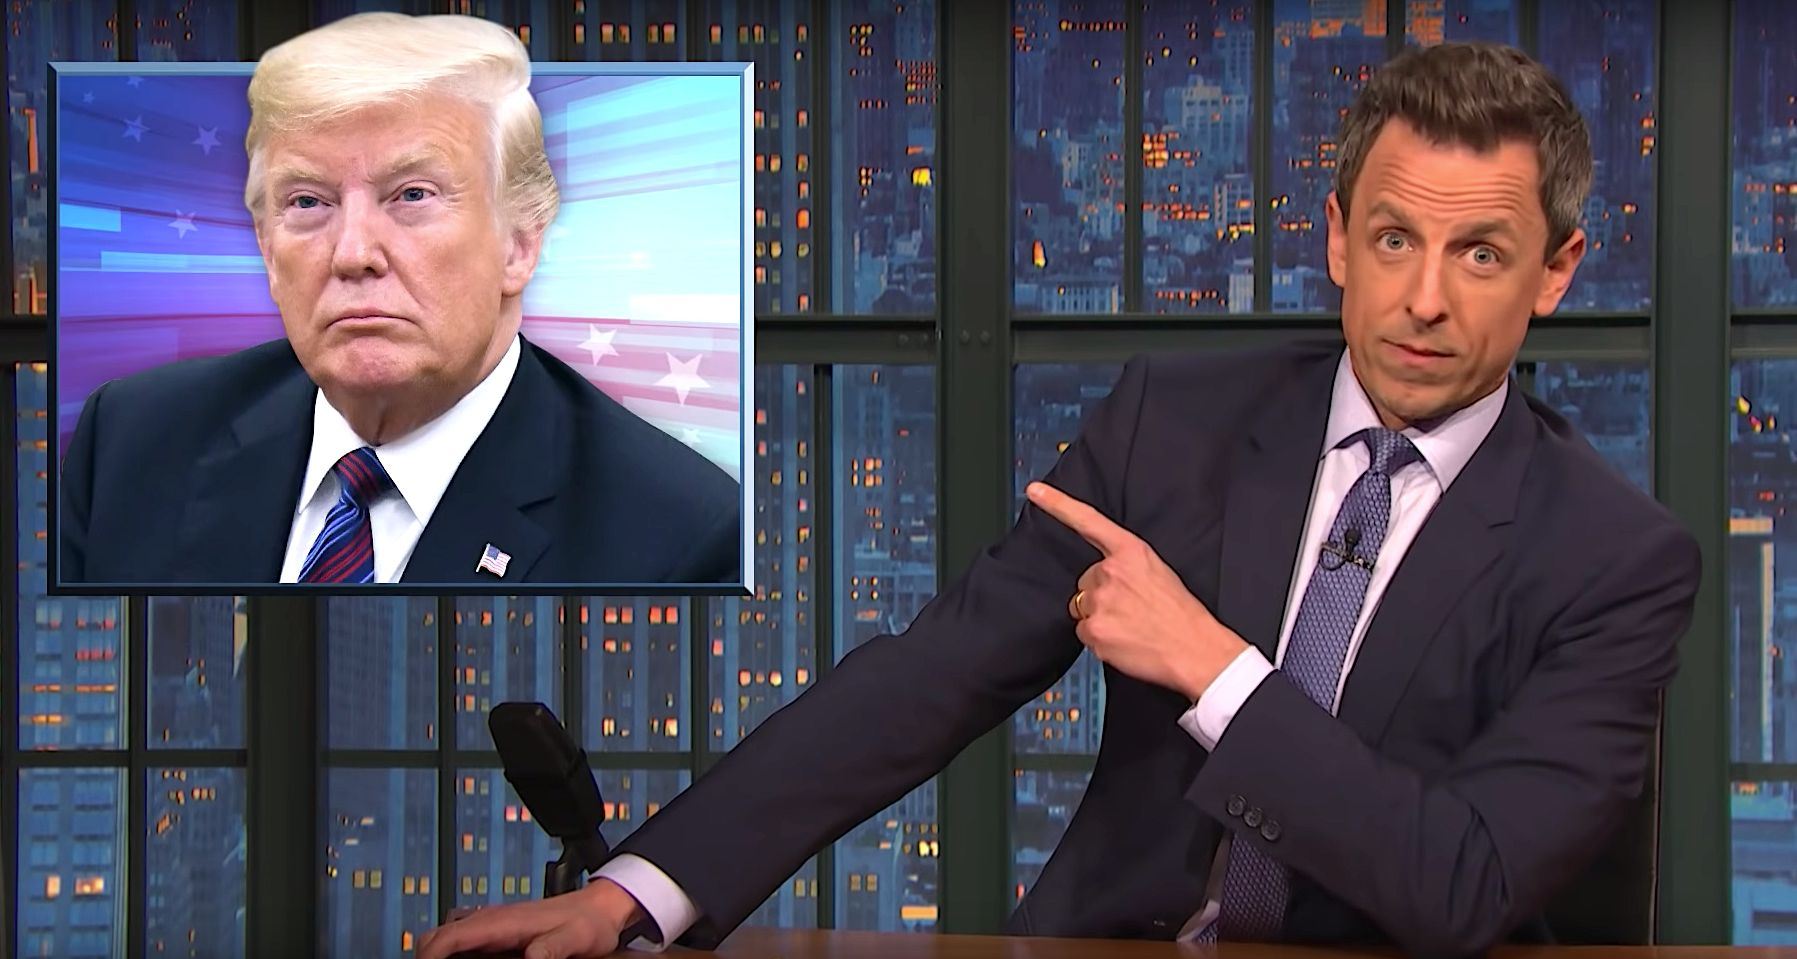 Seth Meyers Has Tasty Theory About Trump's Putin Meeting